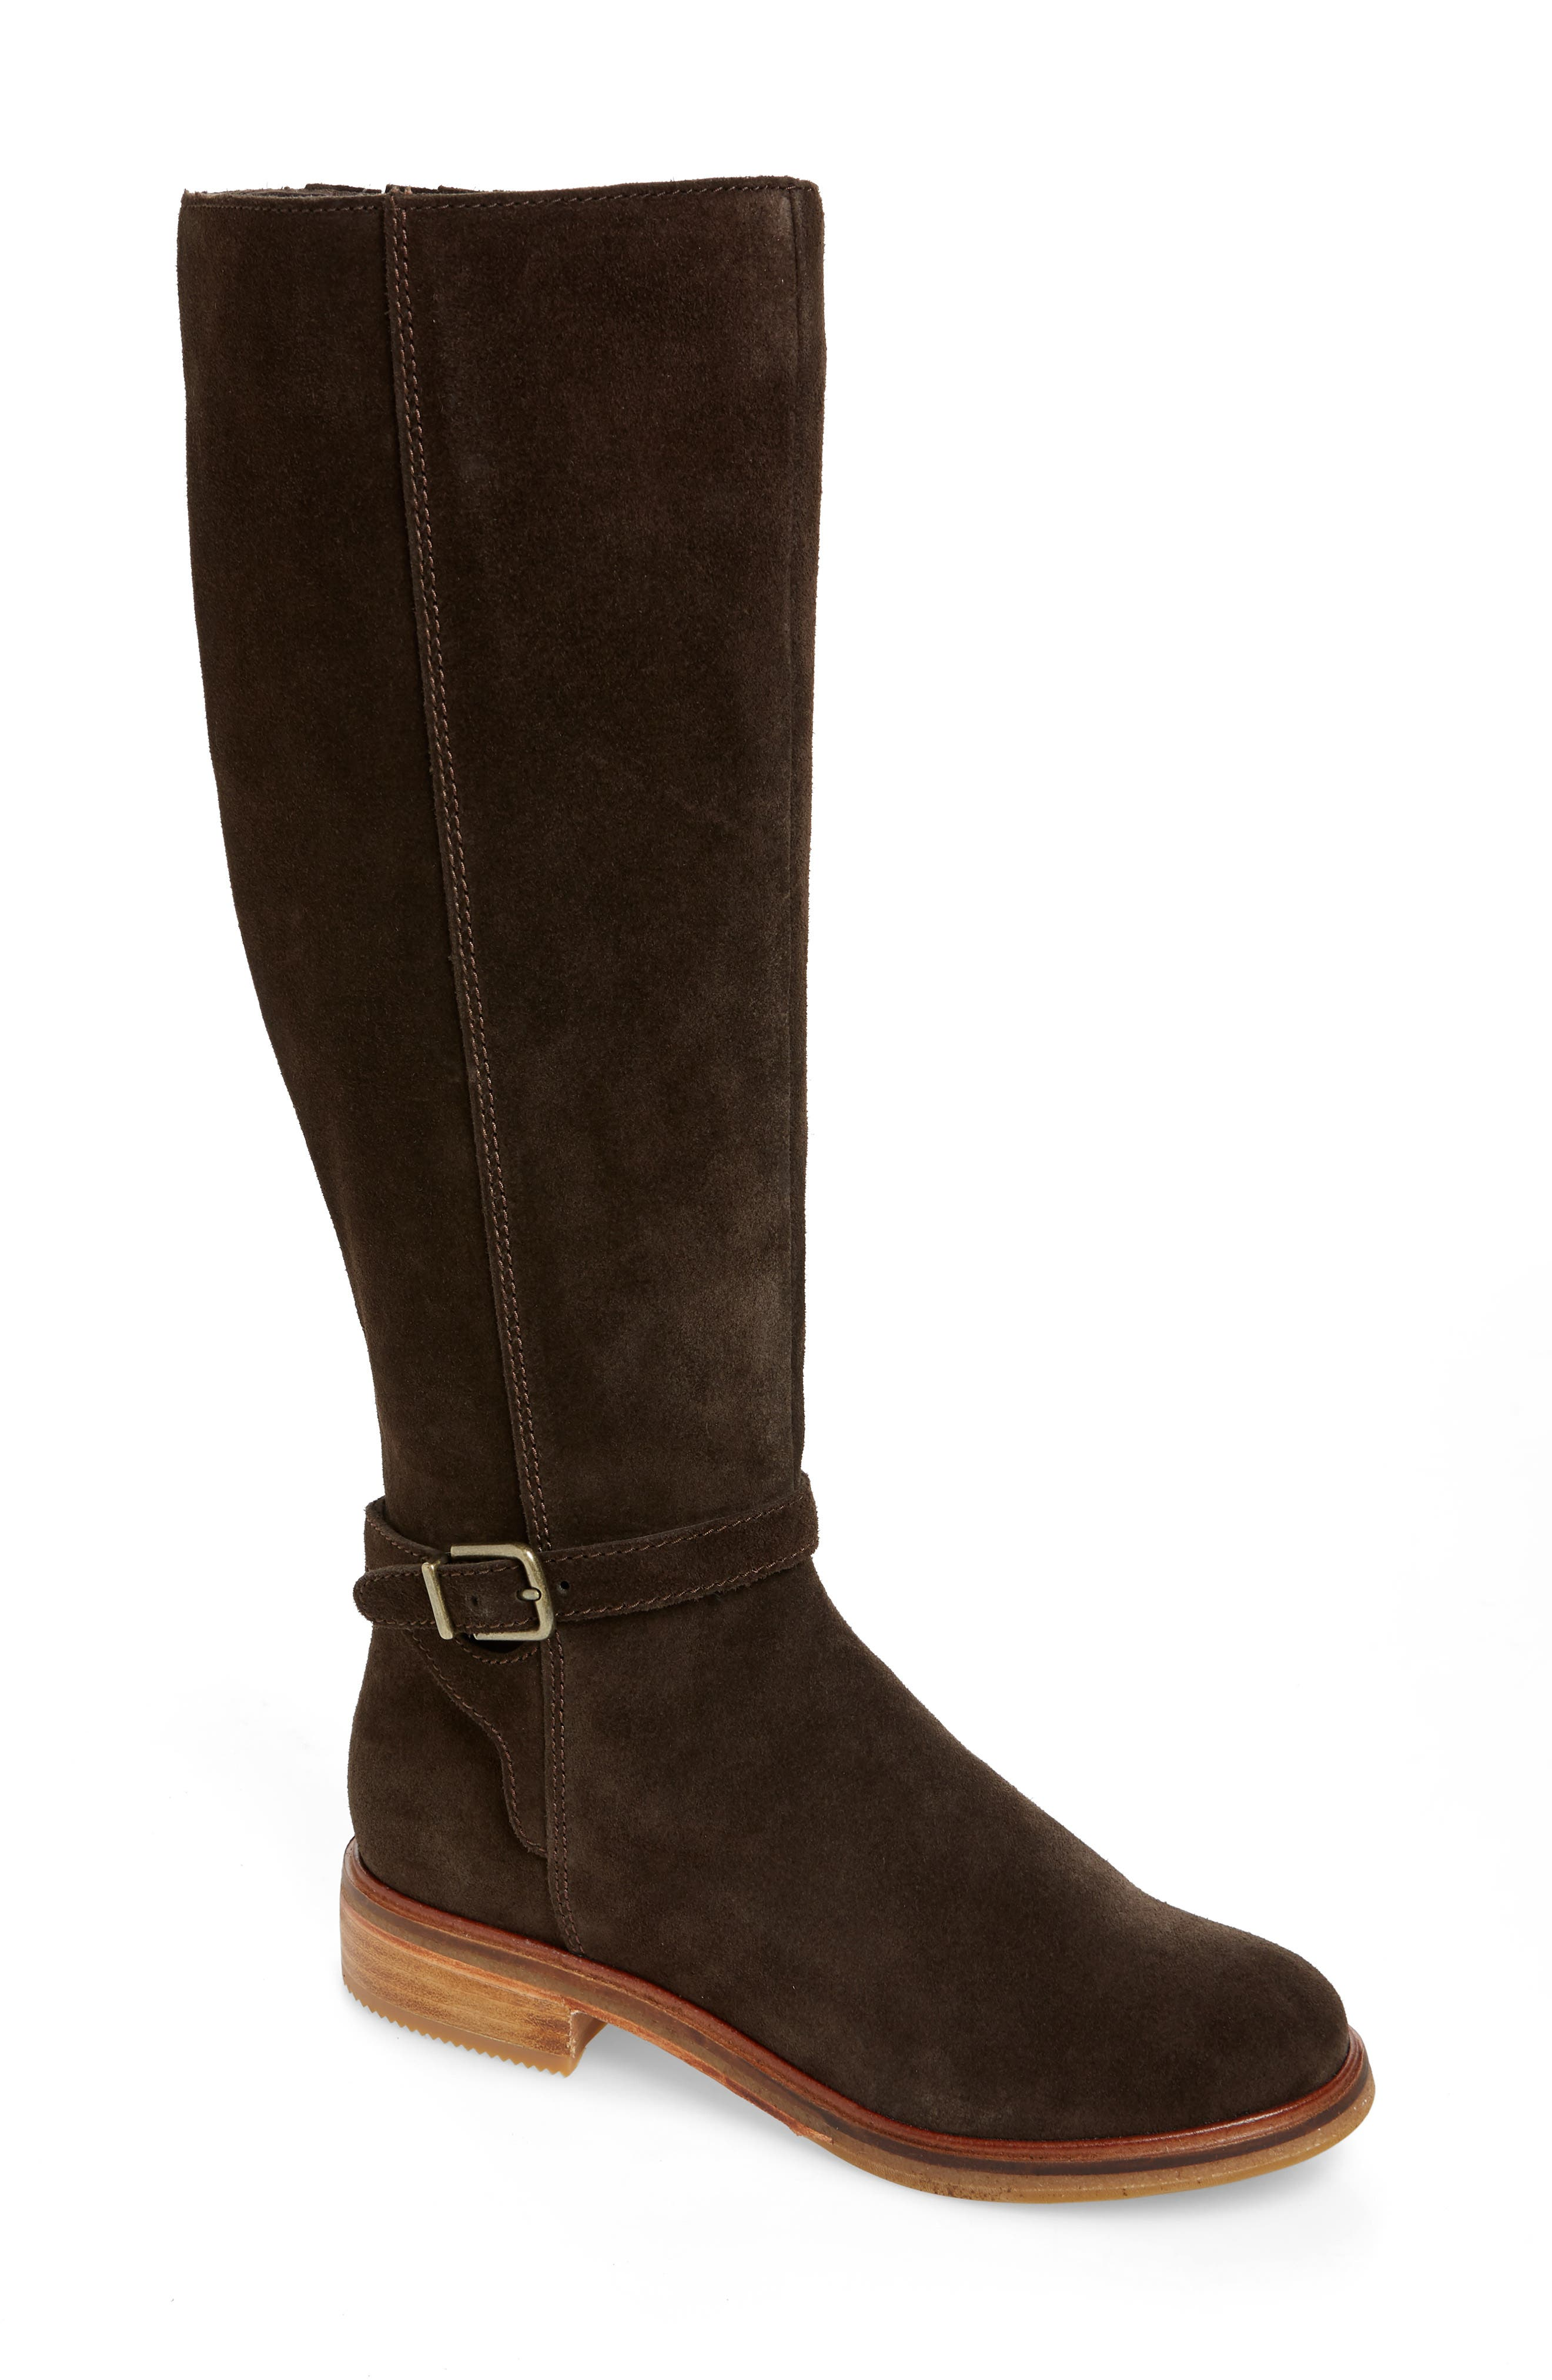 Clarkdale Clad Boot,                             Main thumbnail 1, color,                             BROWN SUEDE